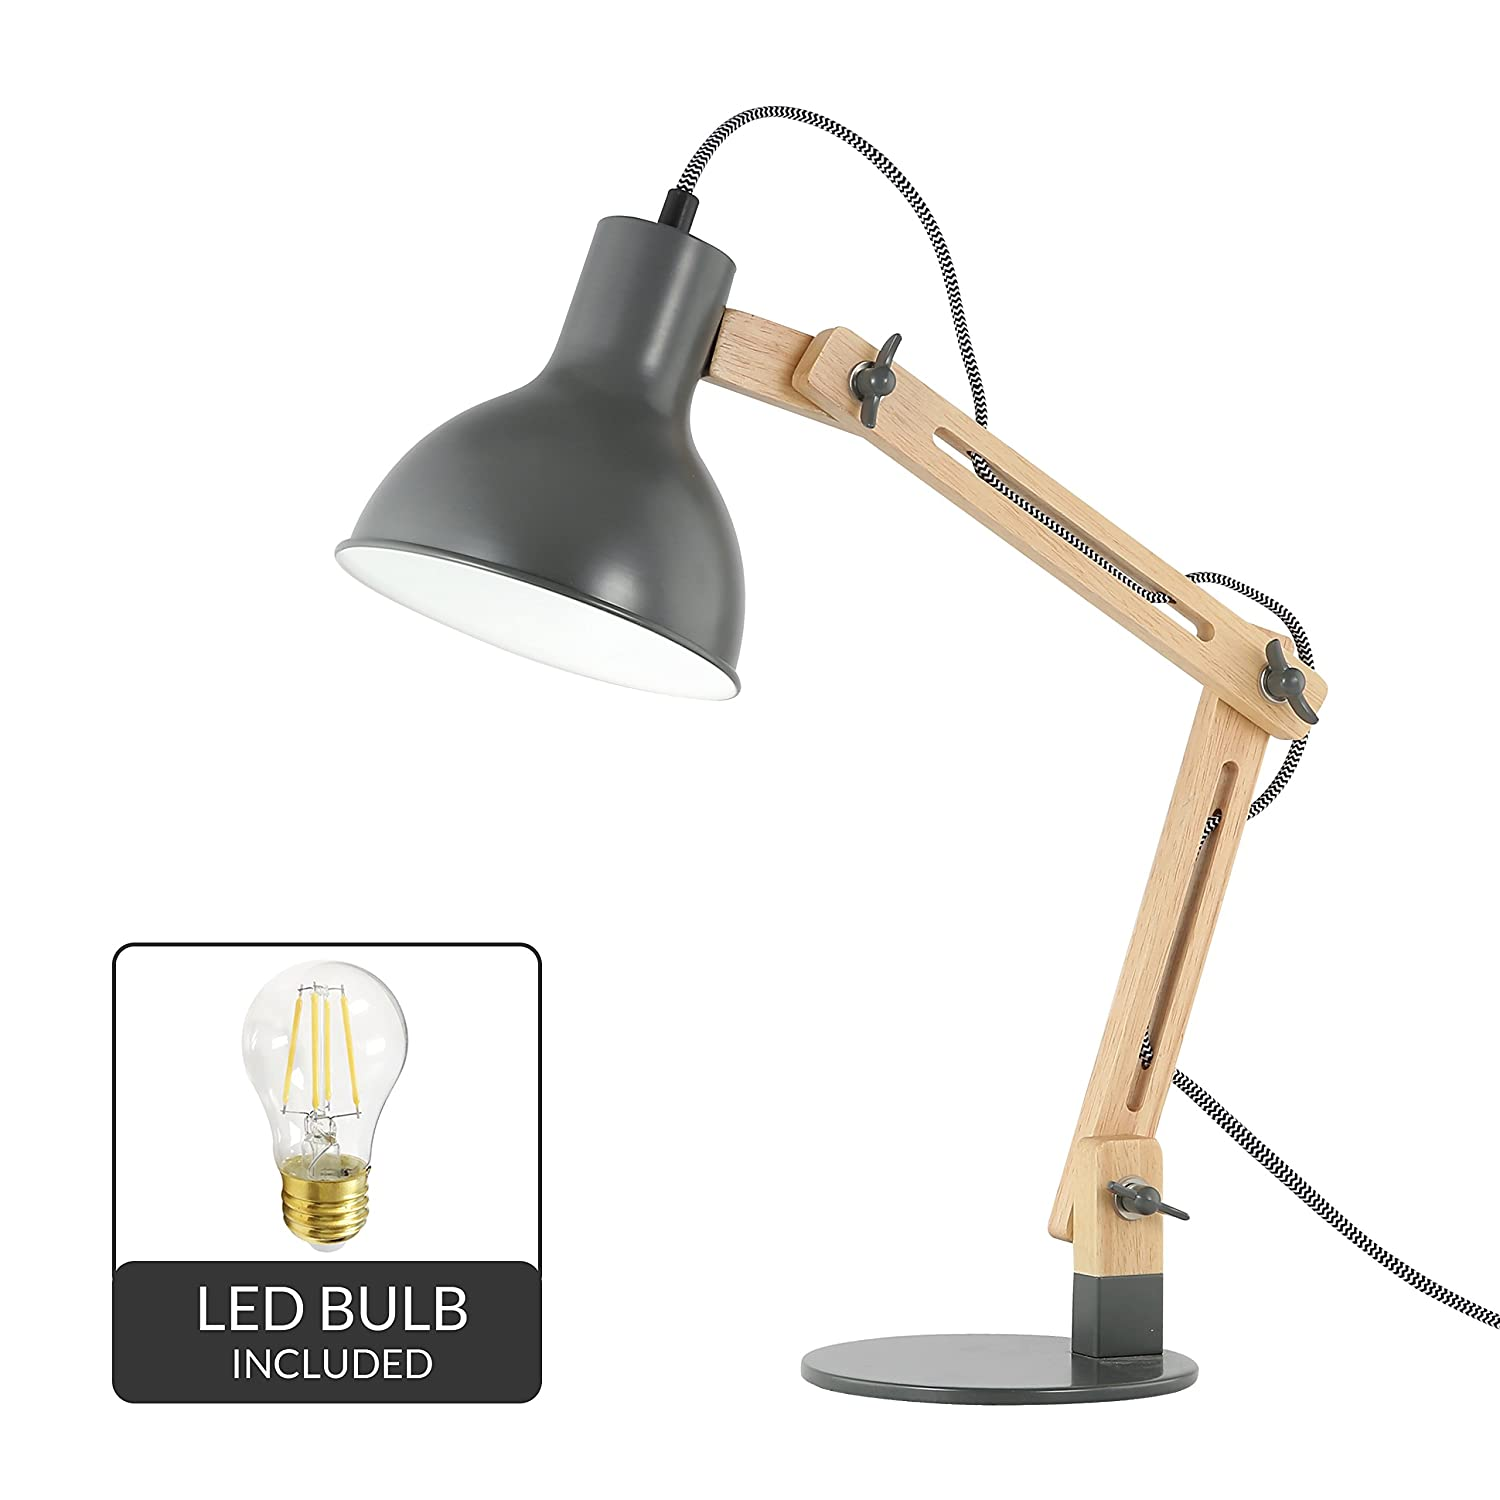 Light Society Galvan LED Task Table Lamp with LED Bulb Included, Natural Wood with Gray Shade and Base, Modern Industrial Pixar-Style (LS-T229-GRY)